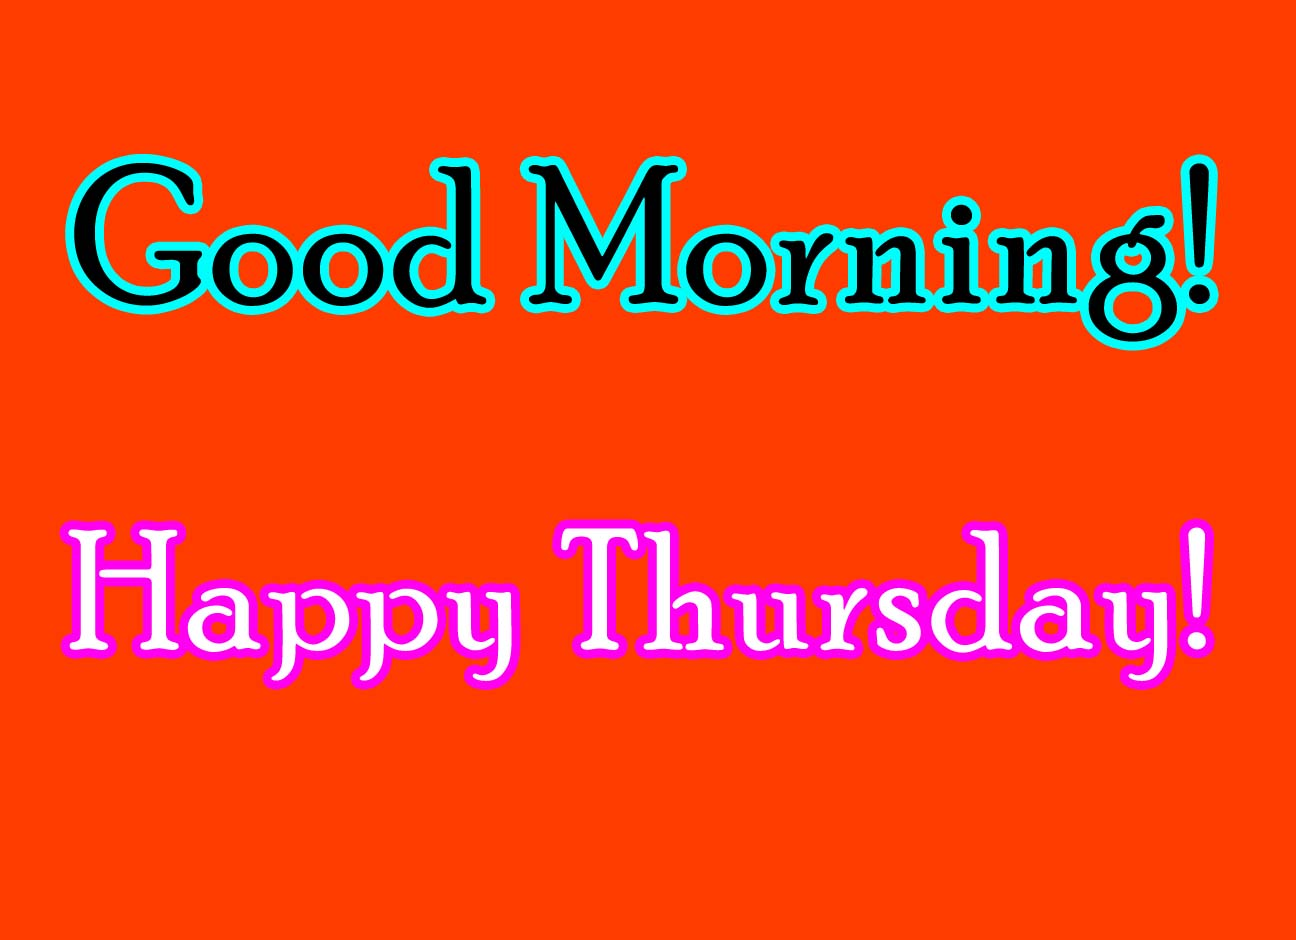 happy_thursday_morning_thumb